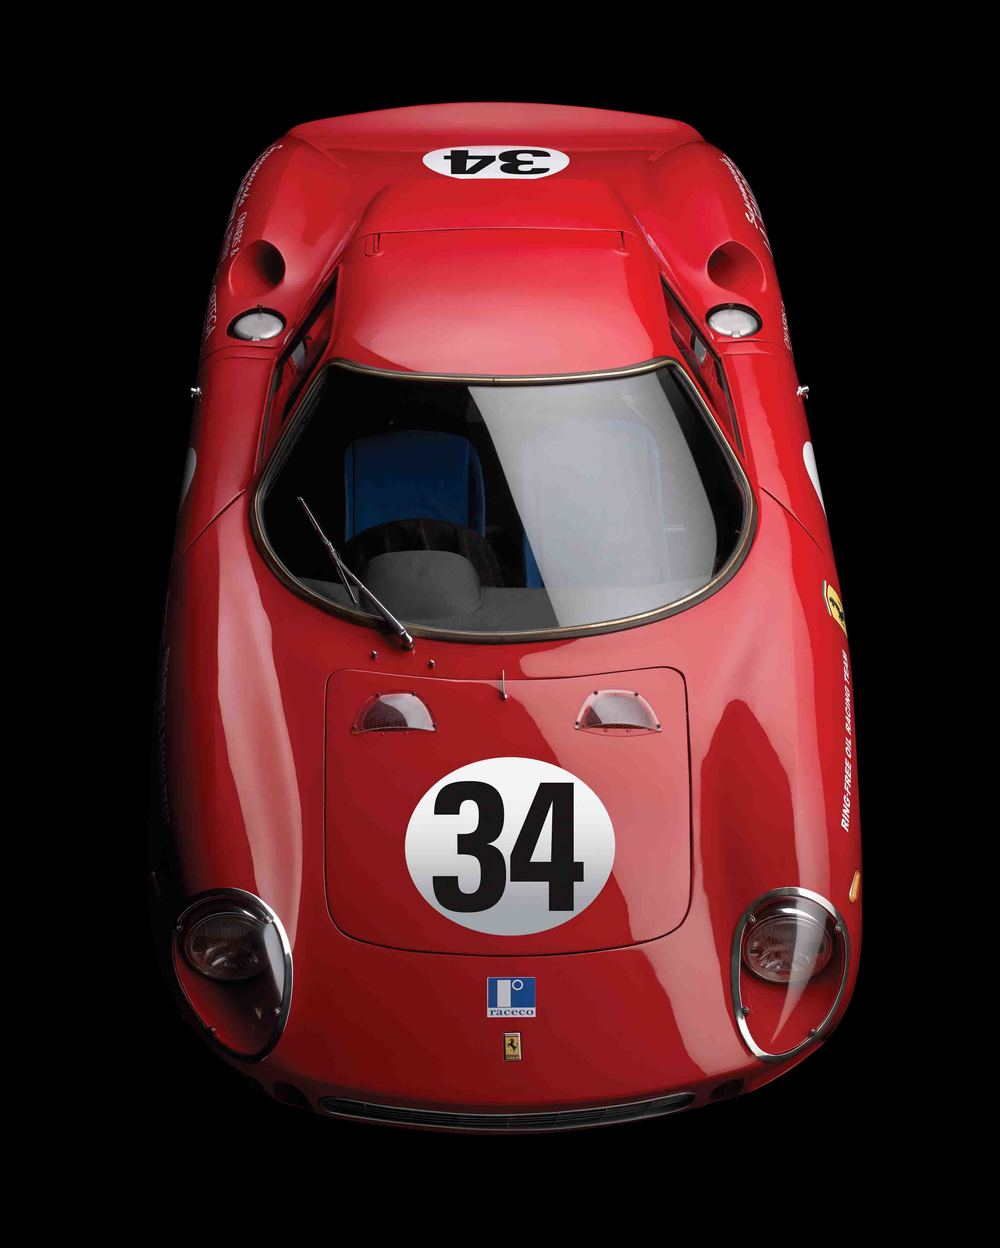 "NY13_r110_10 img alt=""ferrari 250 lm scaglietti the car crush the art of the automobile"".jpg"